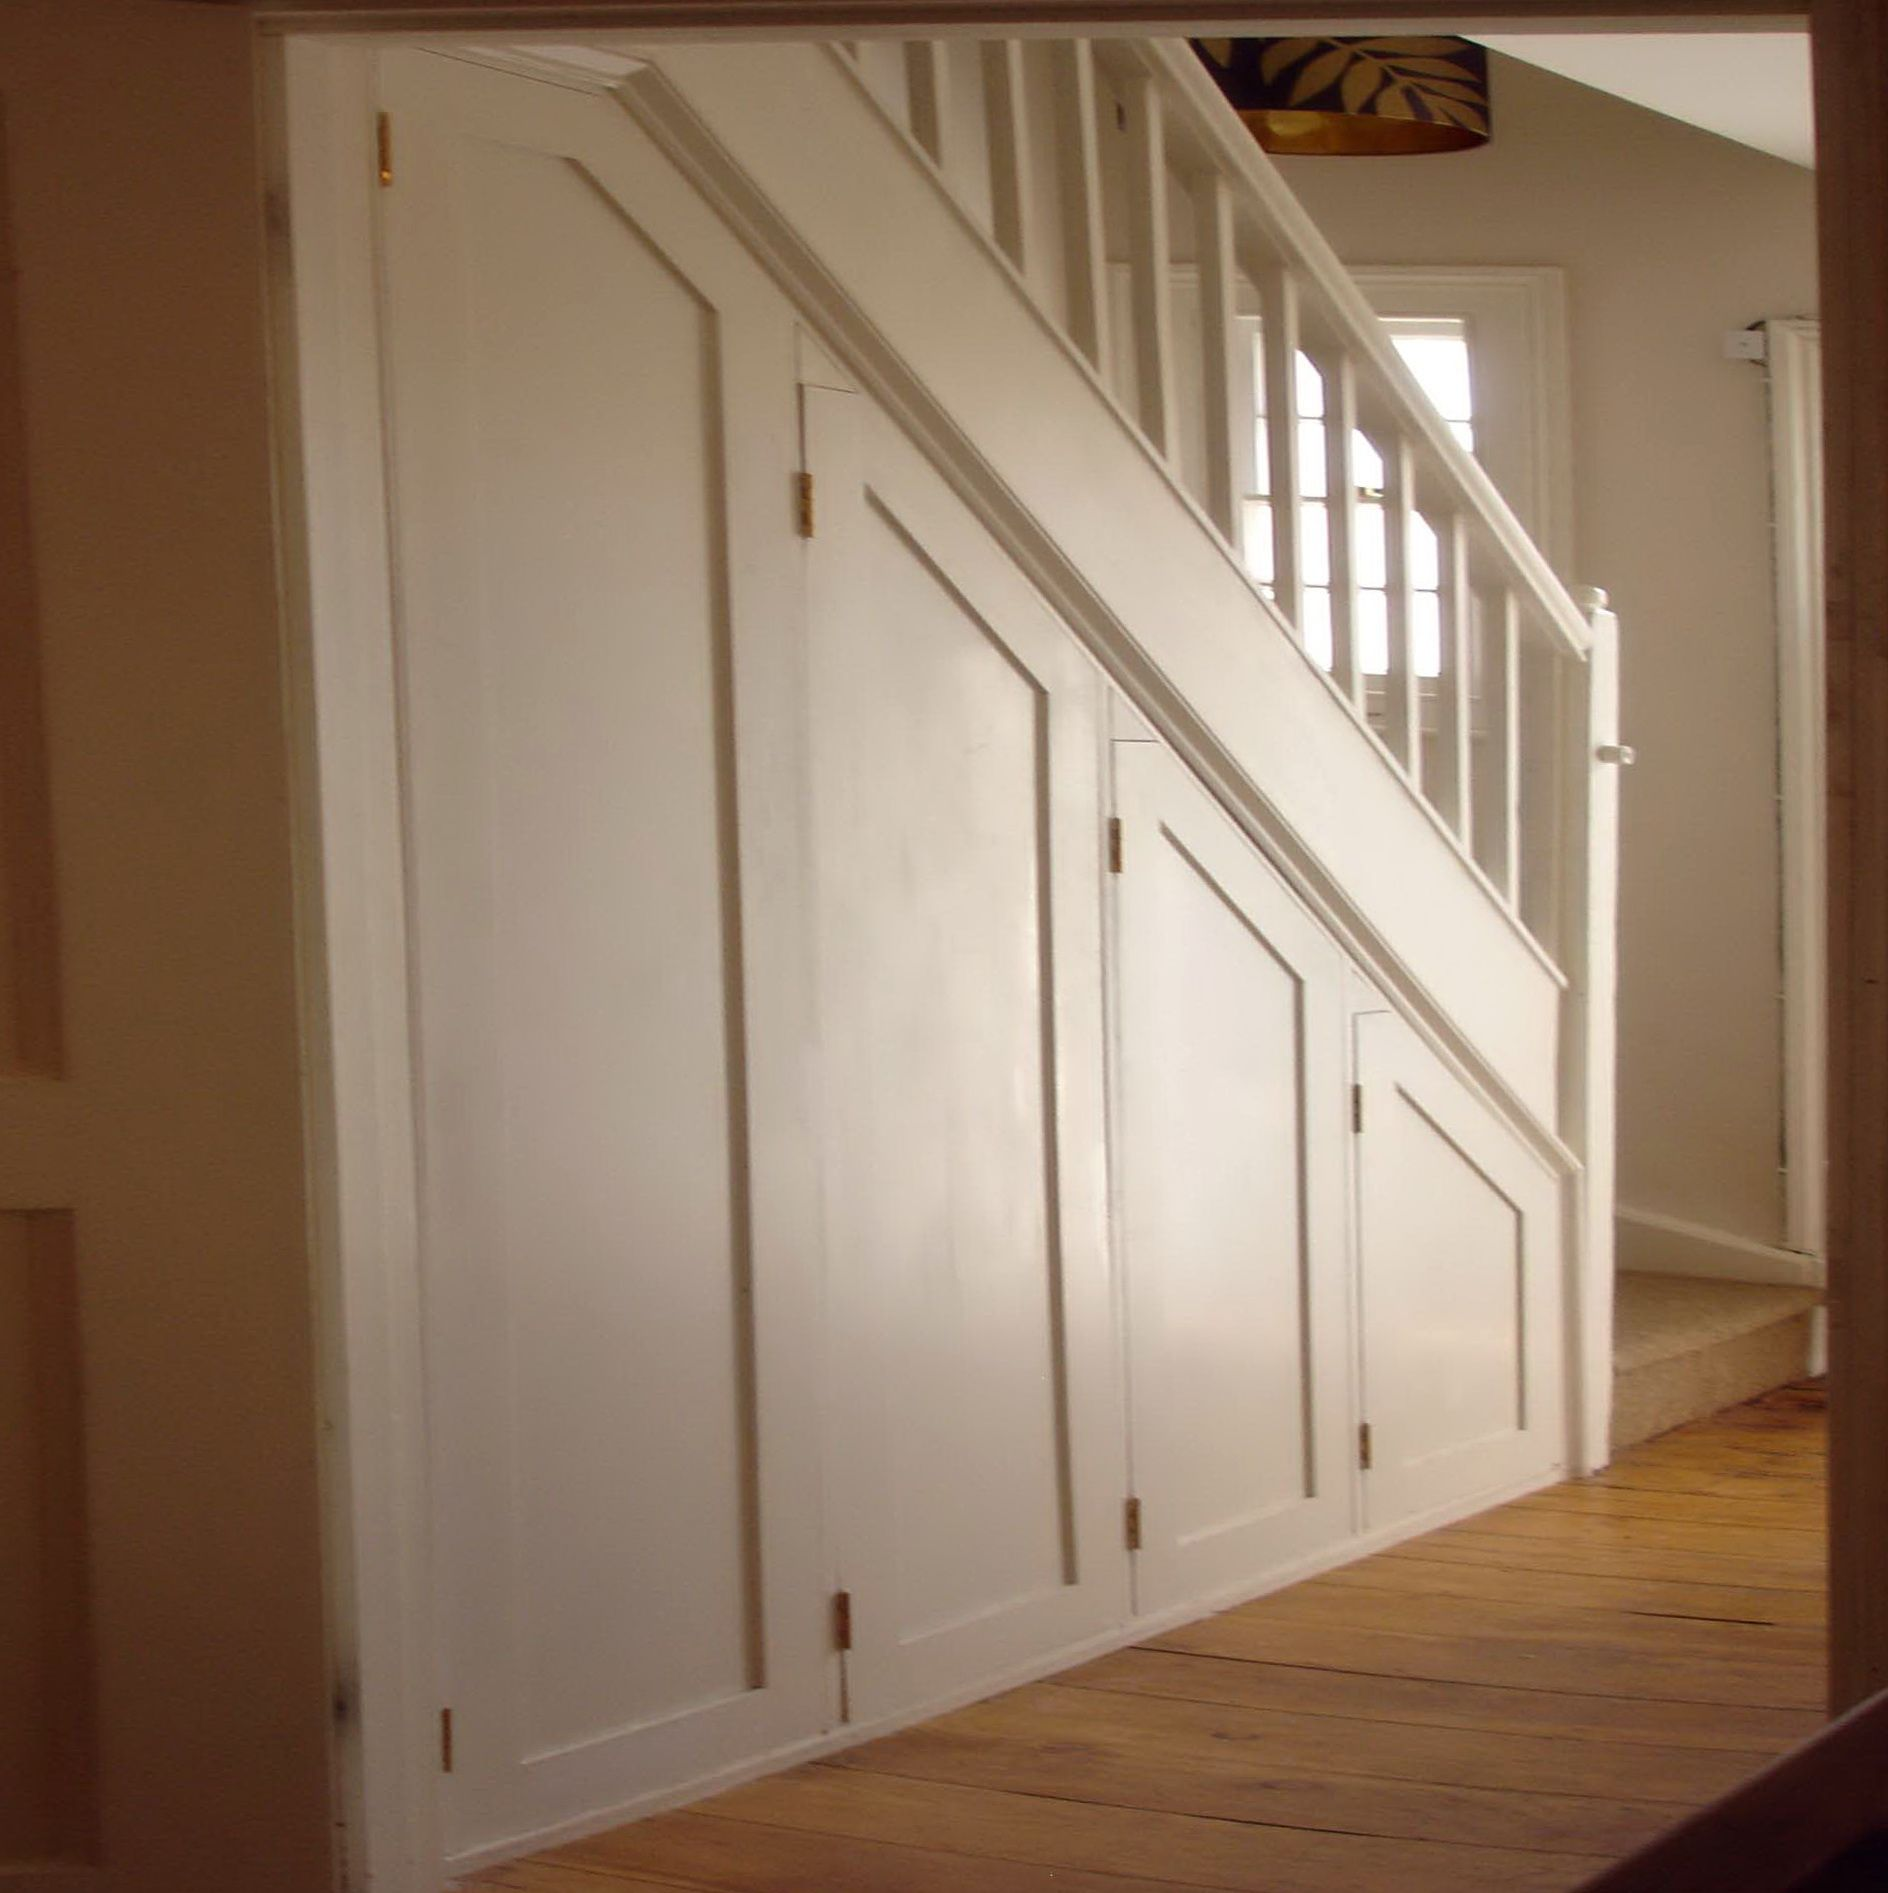 Stairway Door How To Build A Closet Under A Staircase | Design